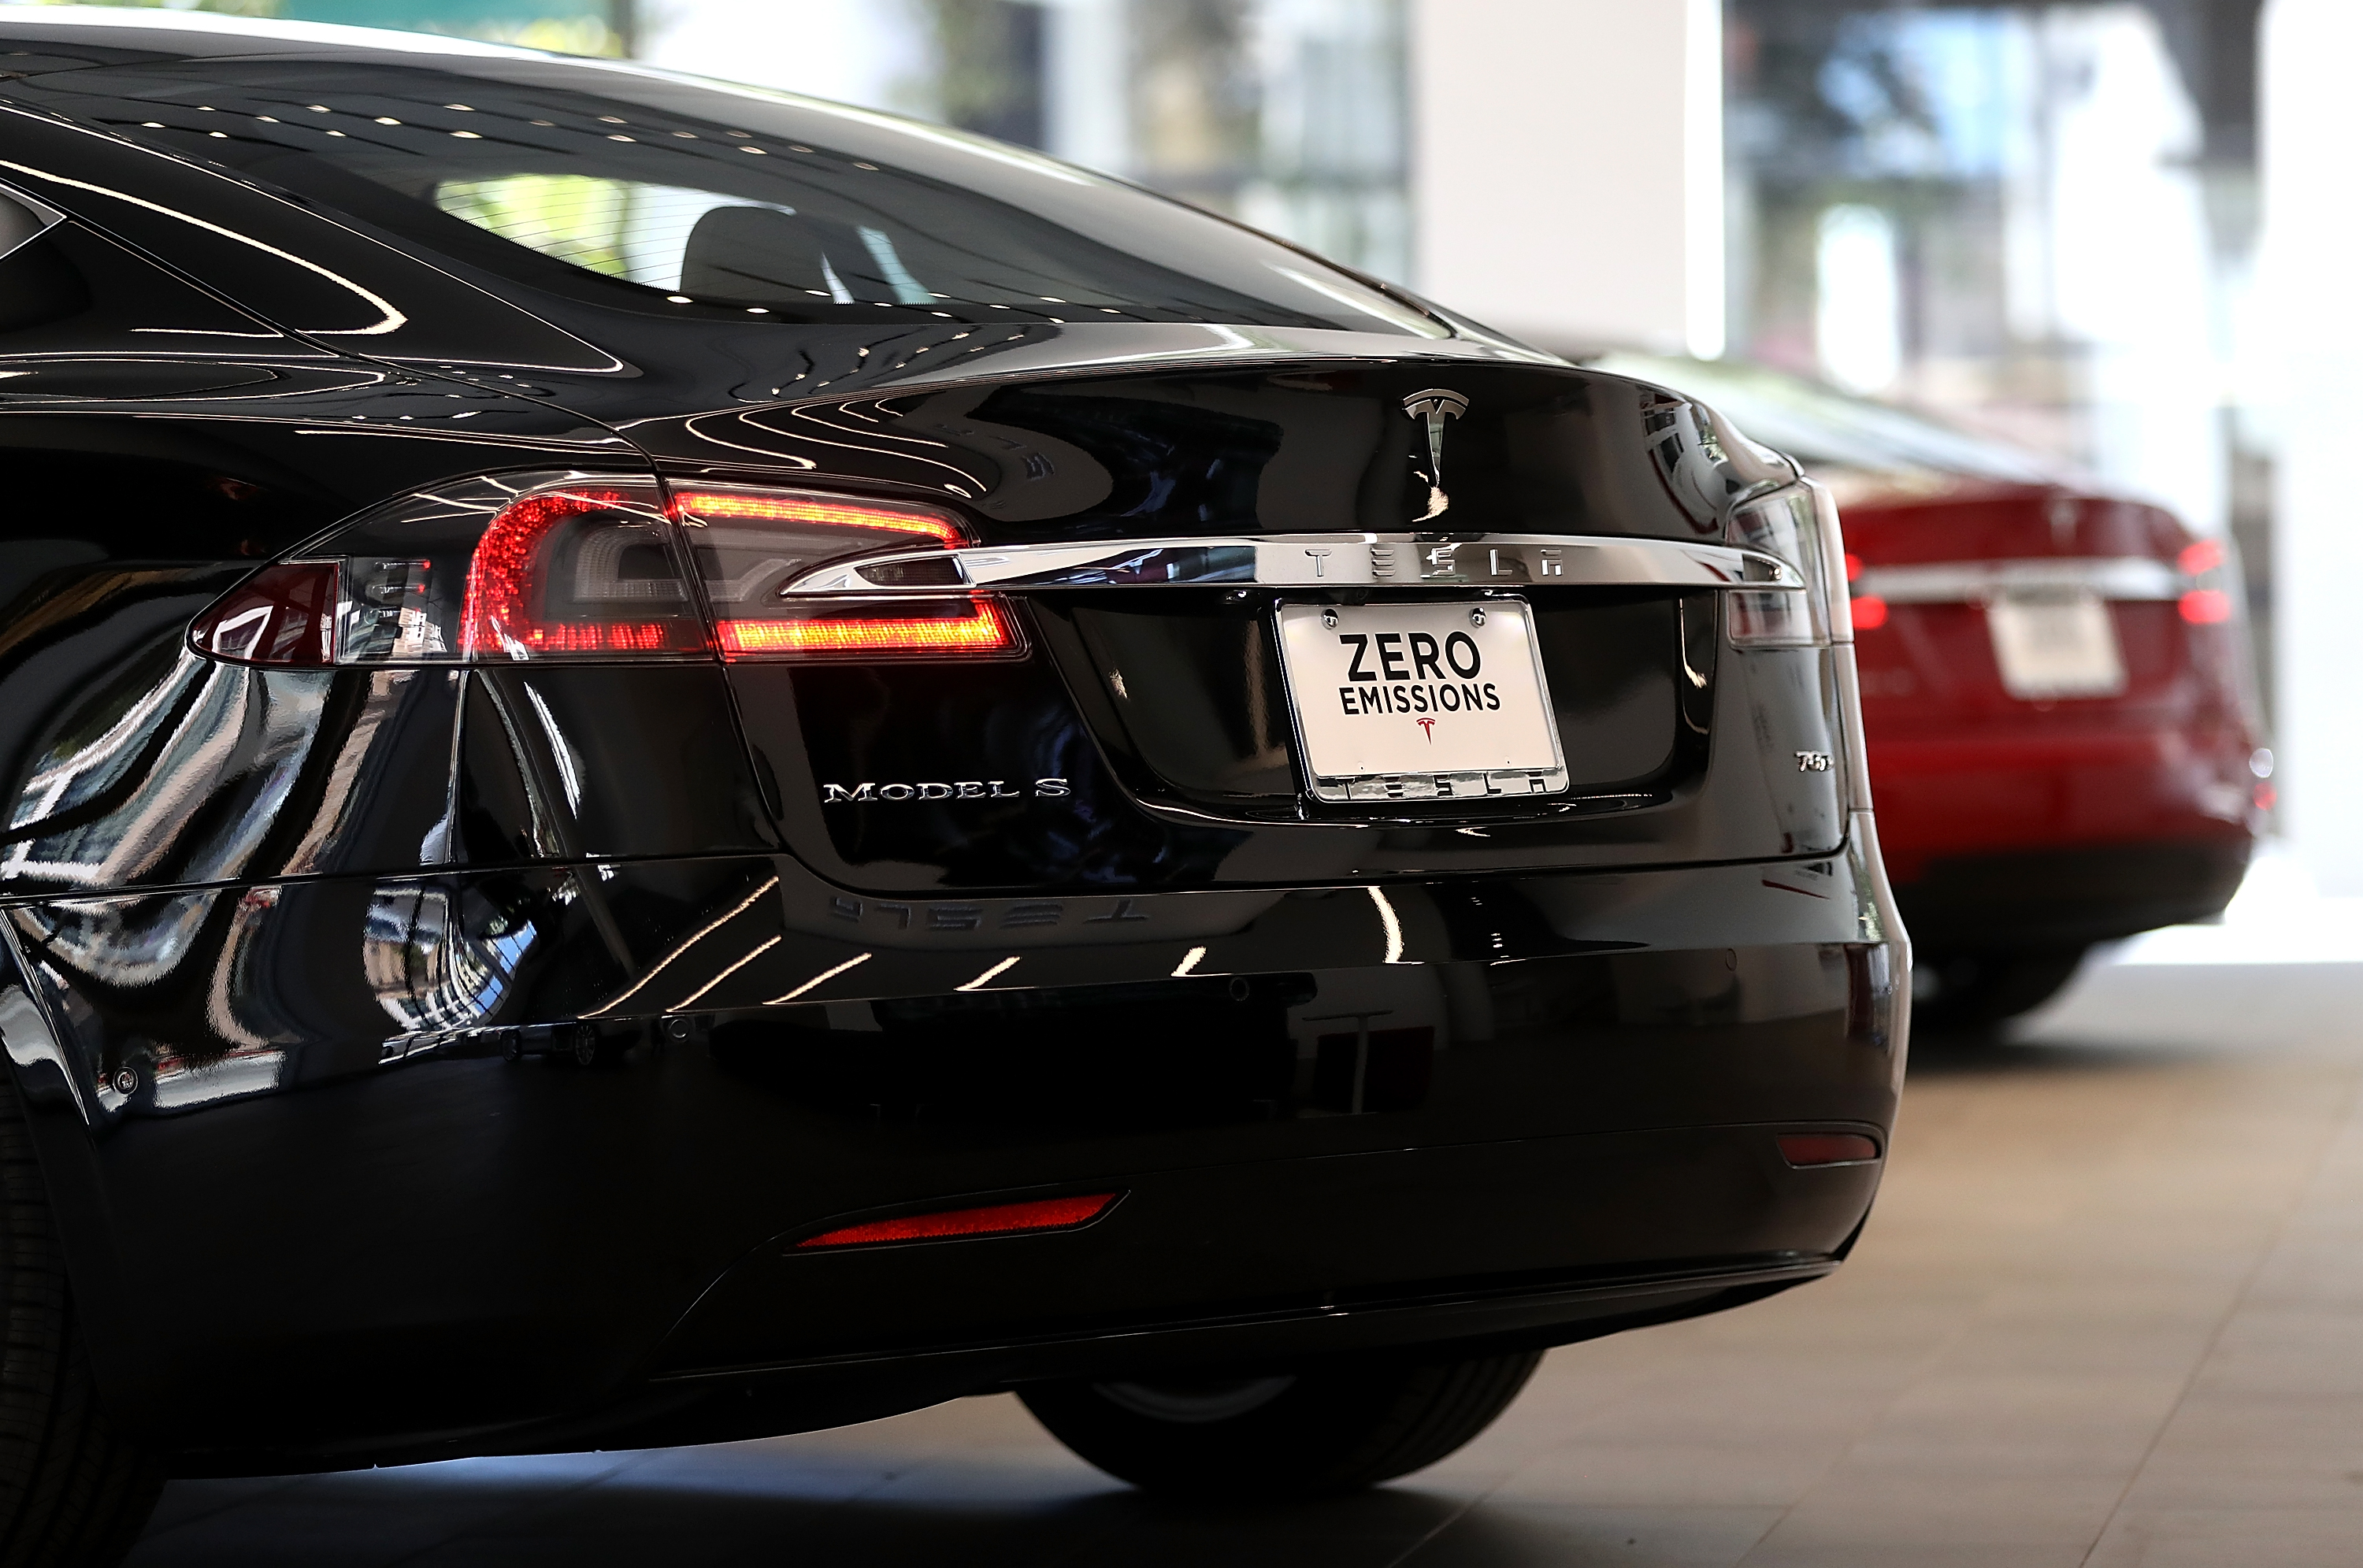 ministry-vaasa-competing-for-tesla-gigafactory-in-finland